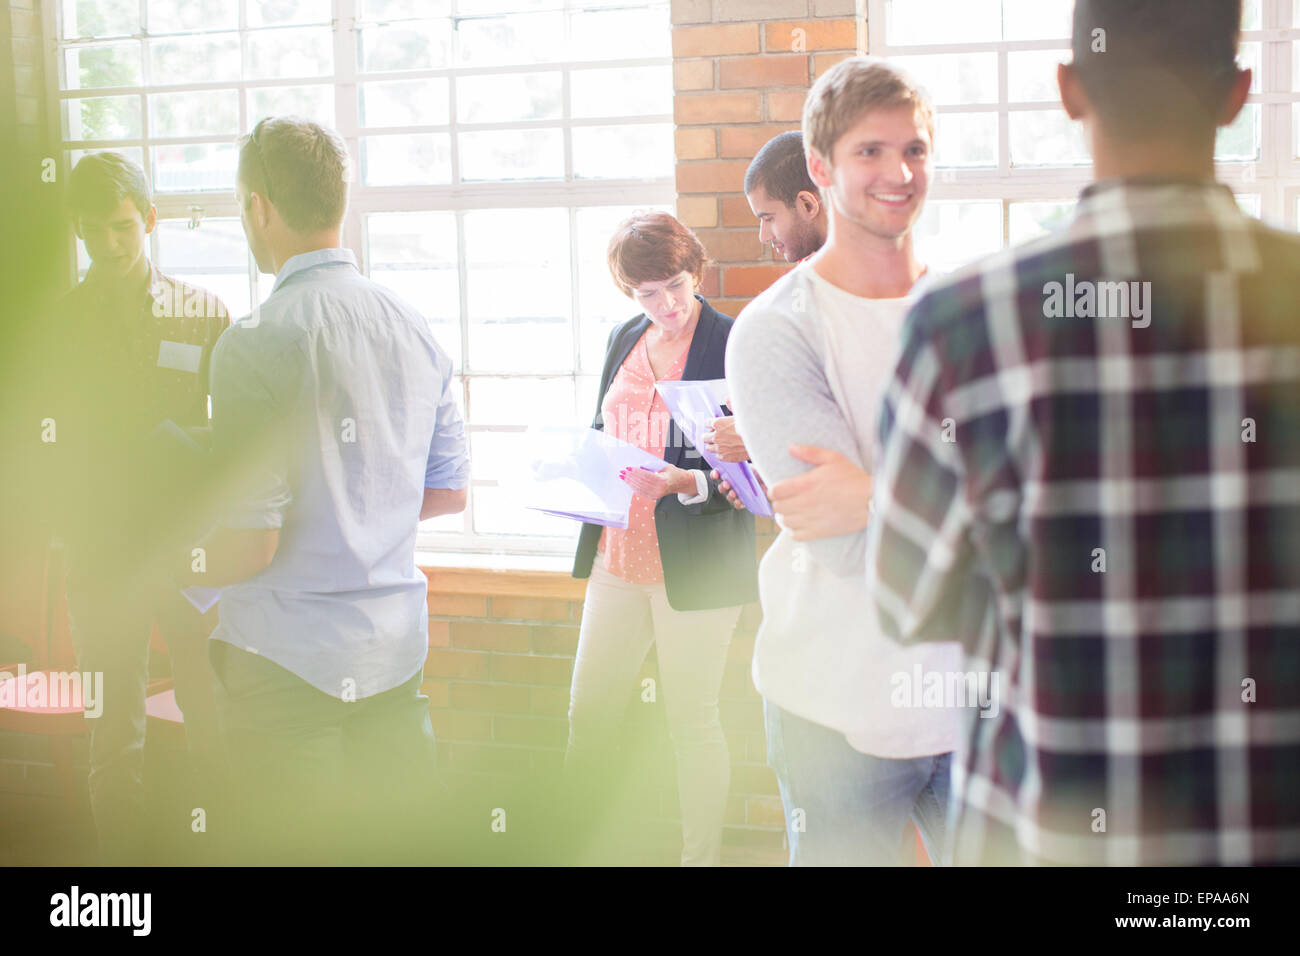 people networking community center - Stock Image